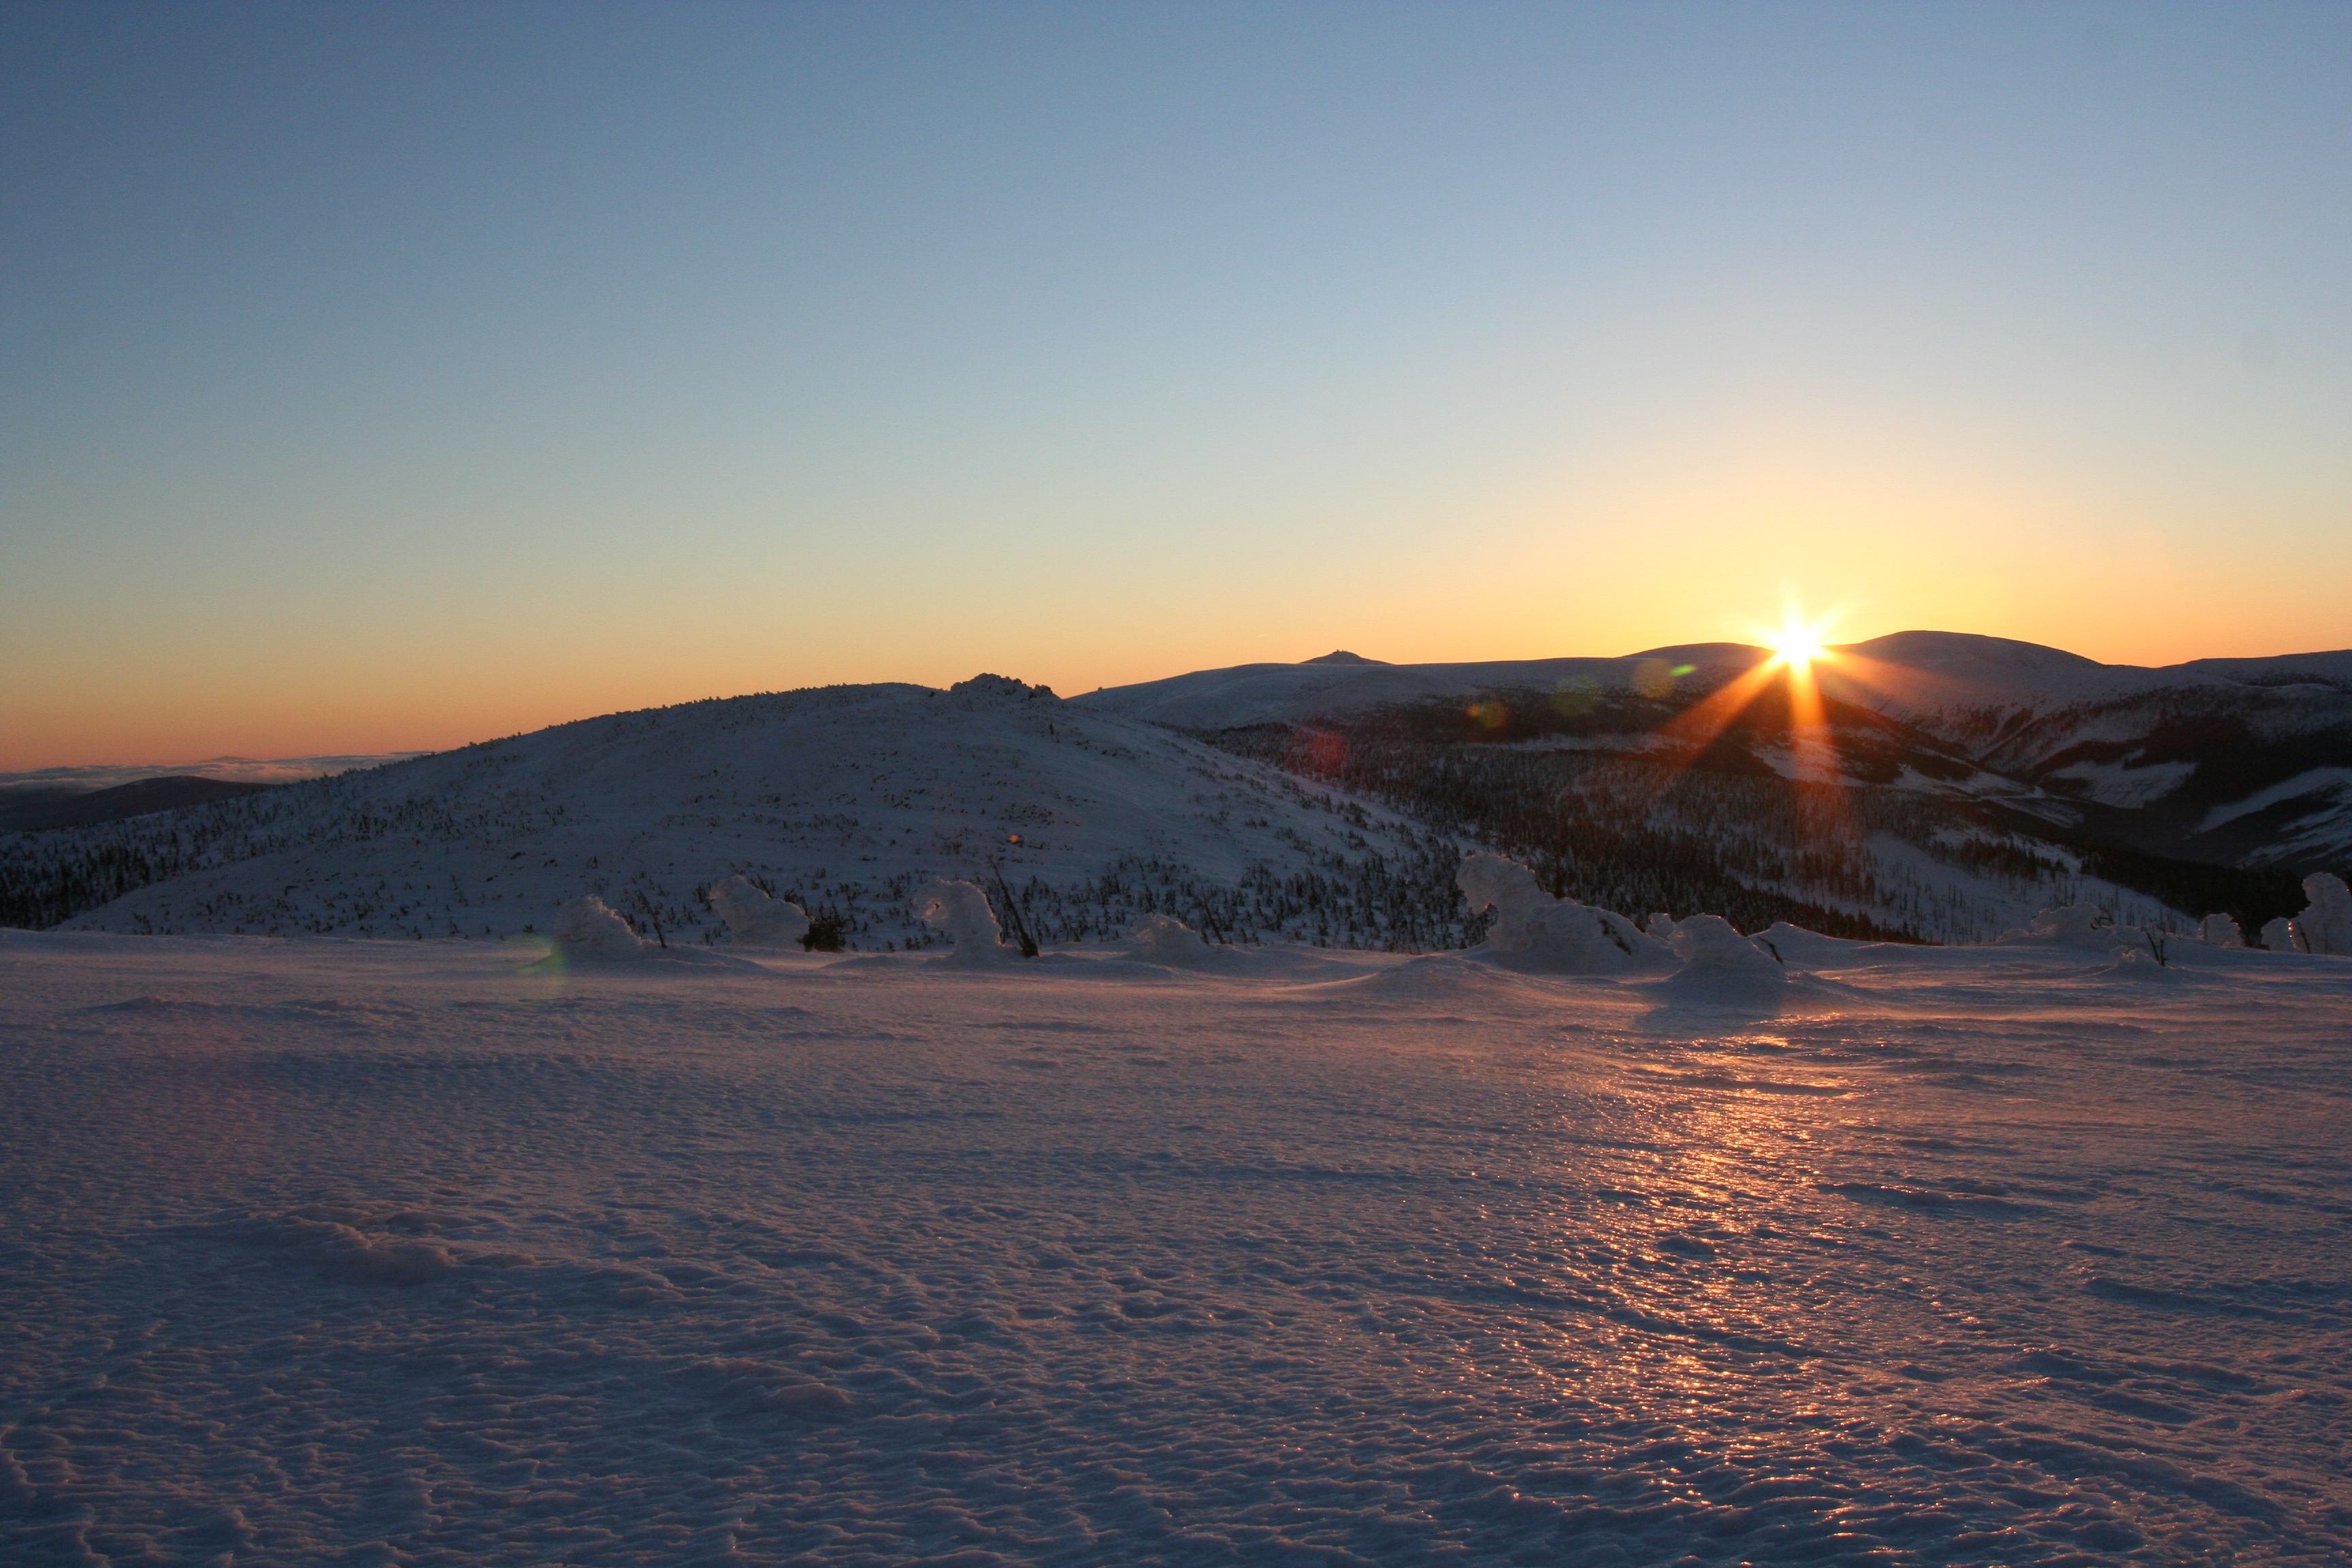 File:Sunrise Karkonosze winter.jpg - Wikimedia Commons